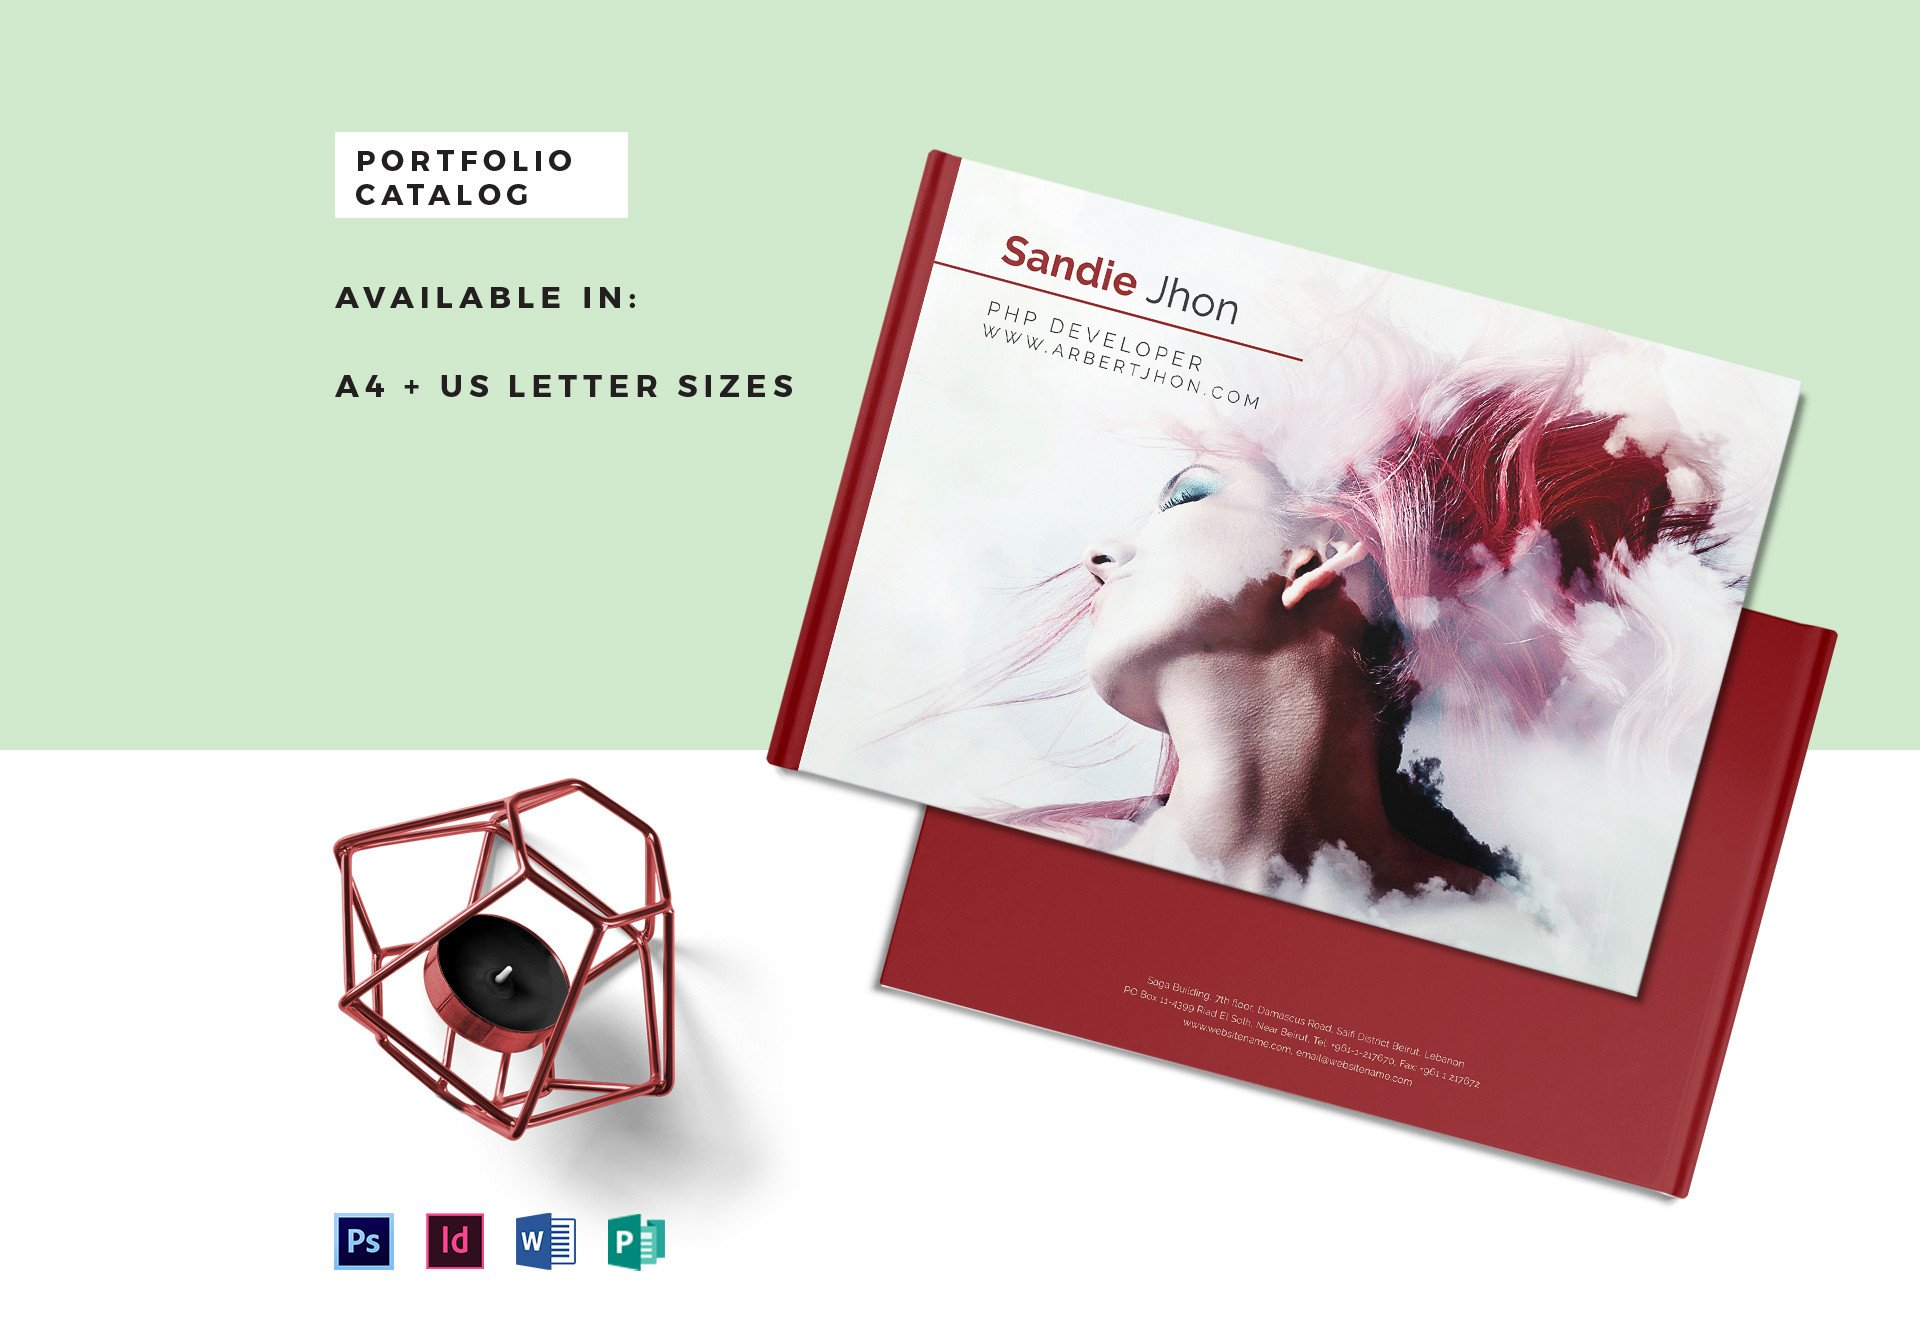 Product Catalogue Template Word Editable Portfolio Catalog Template In Psd Word